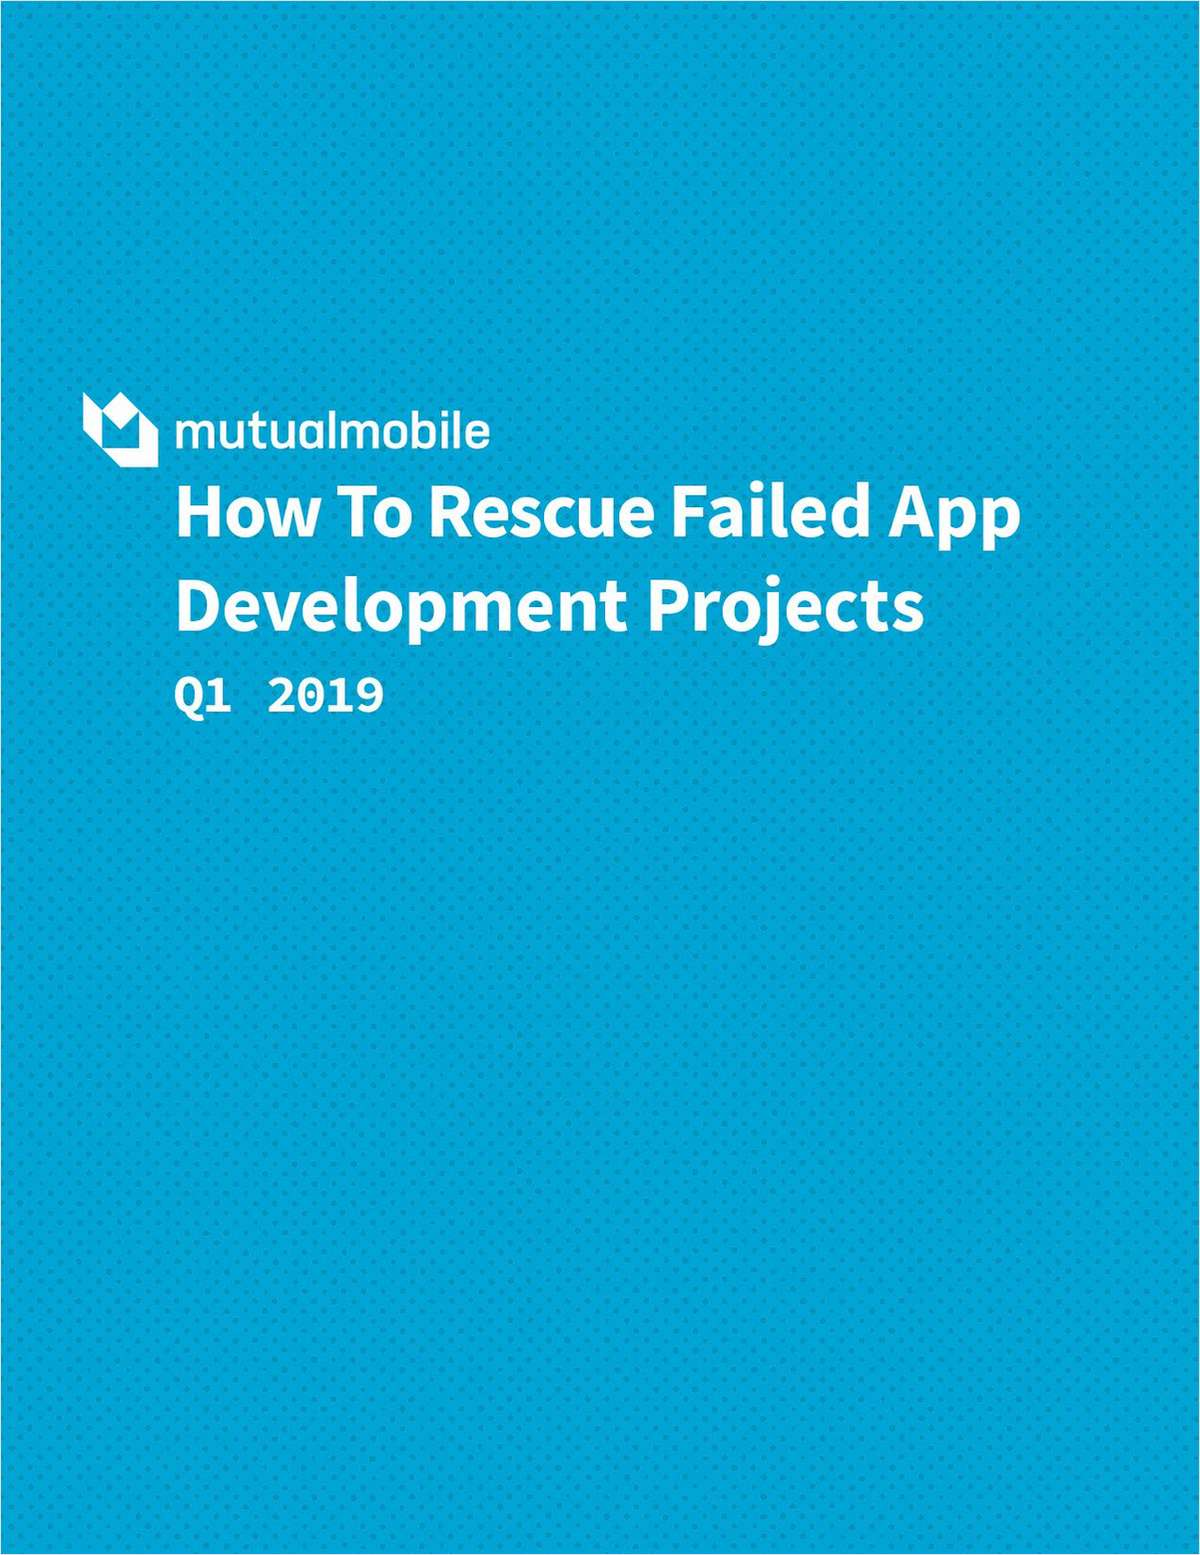 How To Rescue Failed App Development Projects